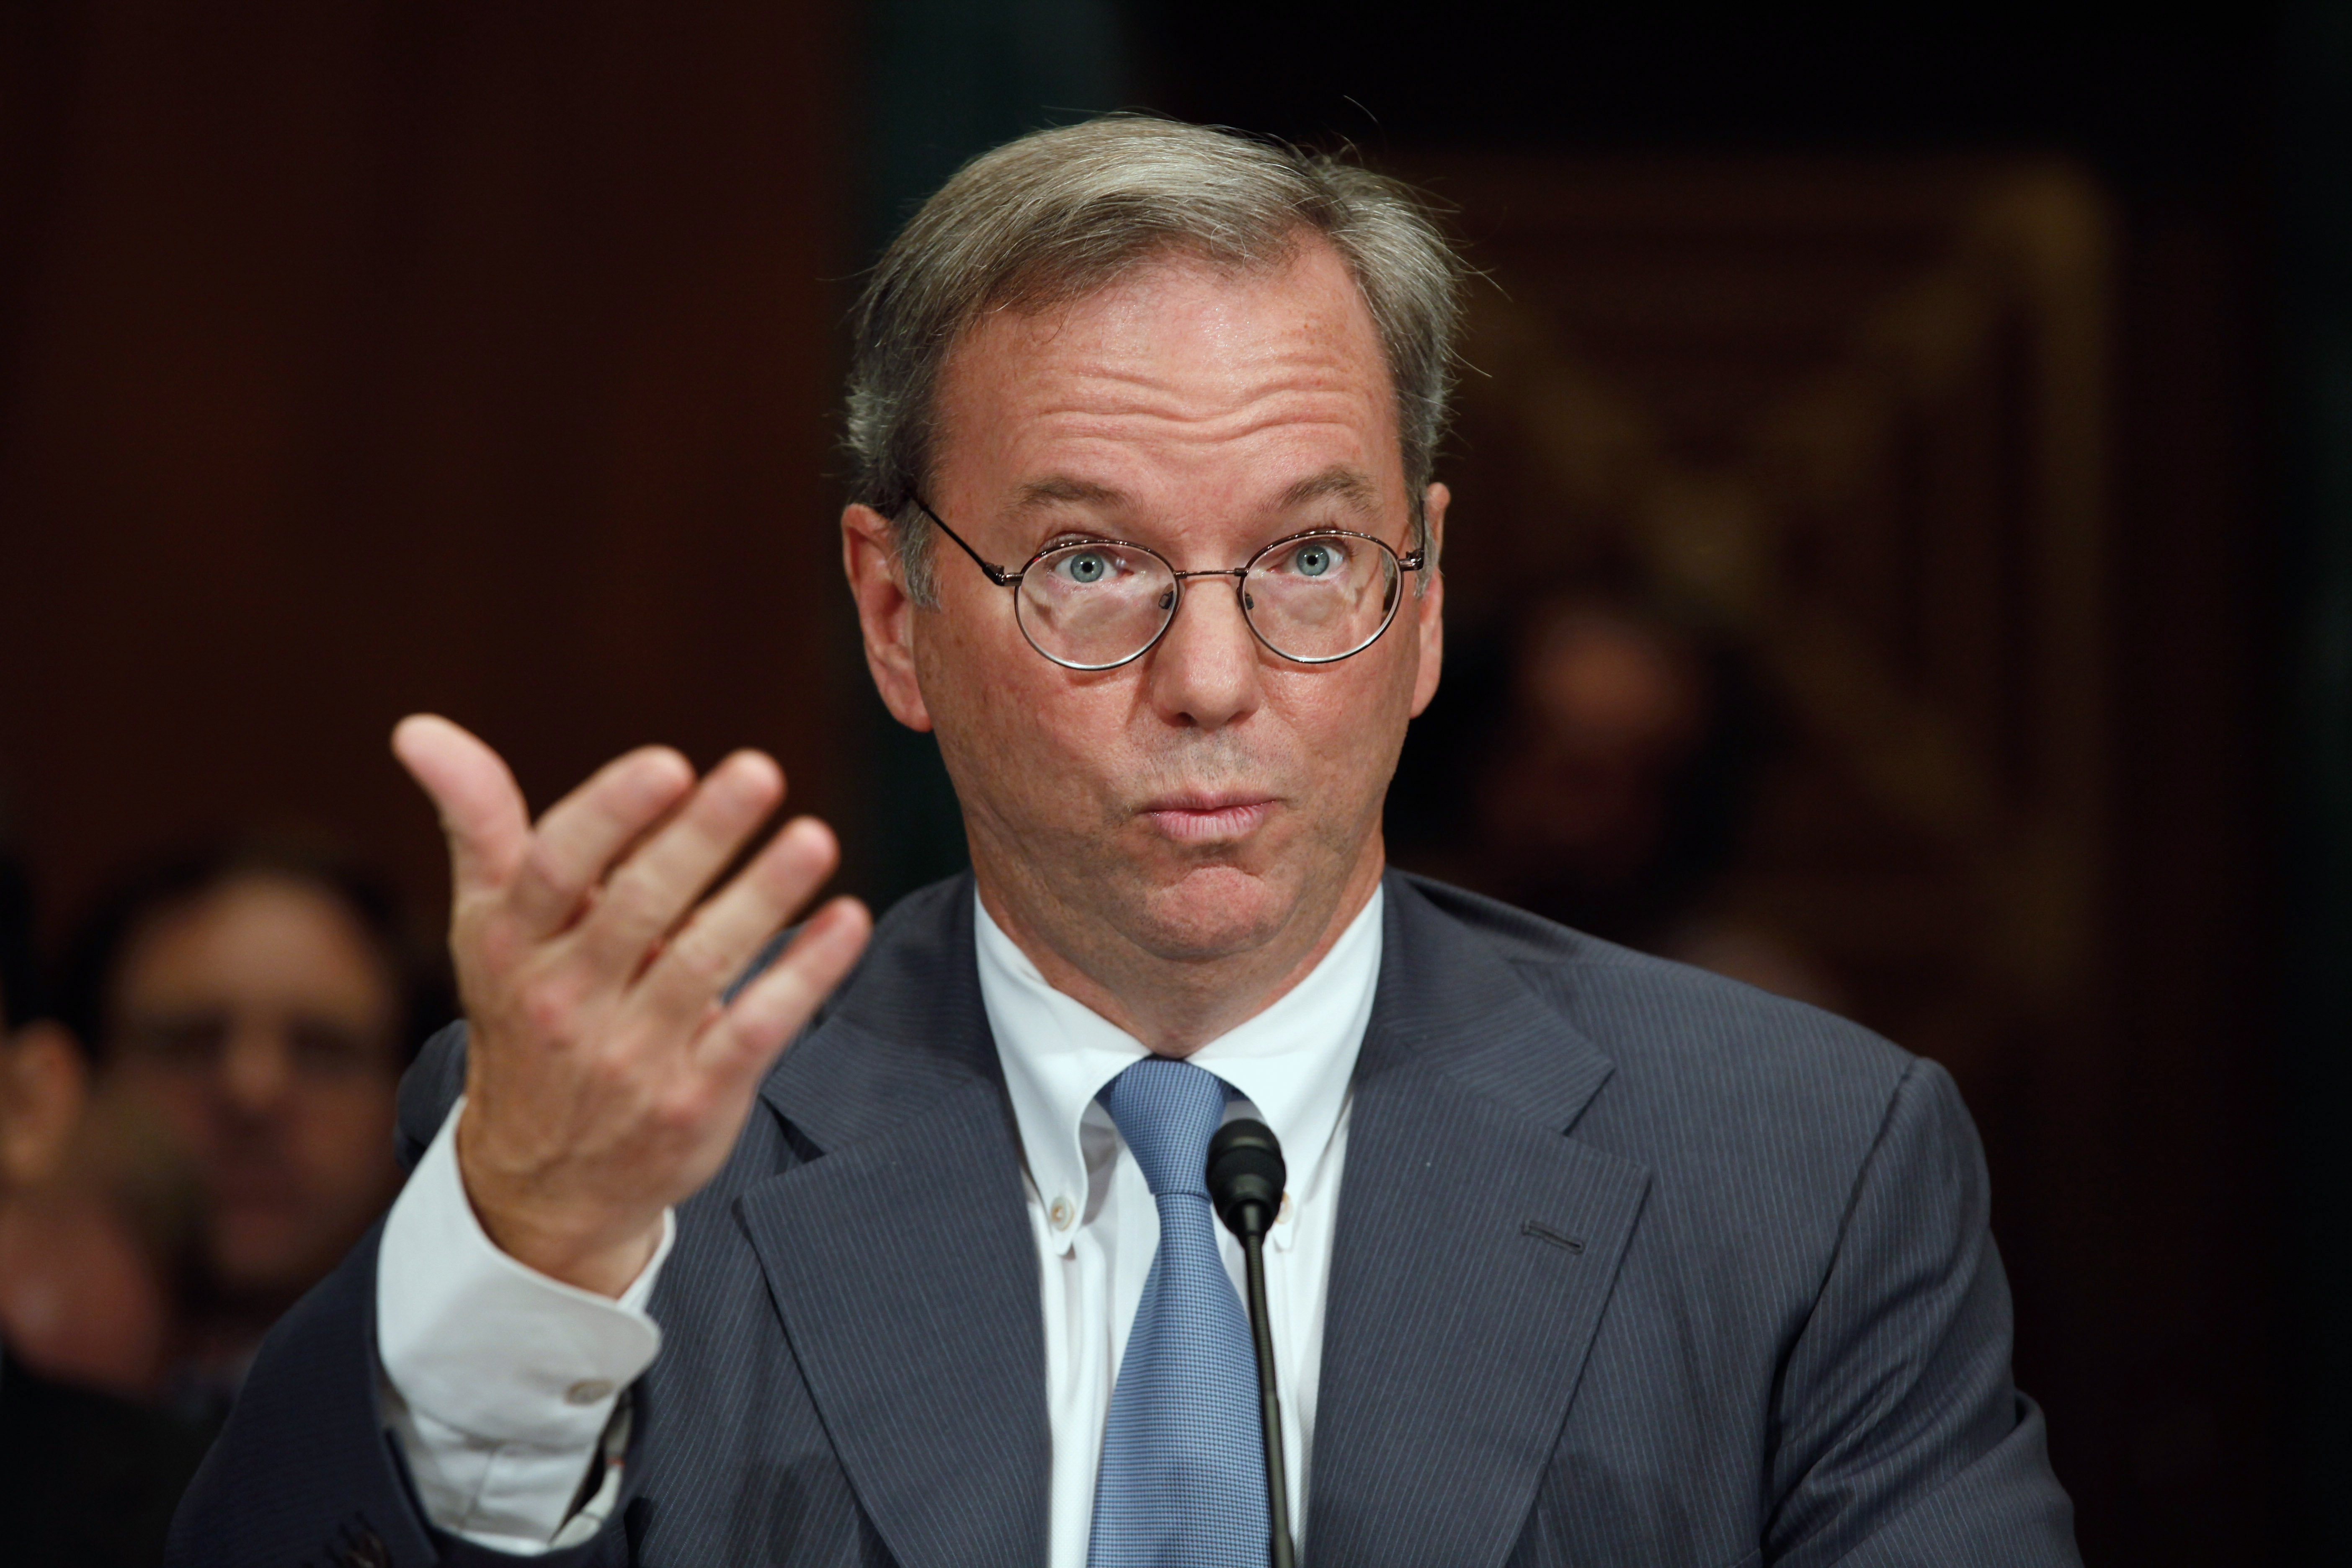 Google Chairman Eric Schmidt faced a Senate Judiciary Subcommittee hearing called 'The Power of Google: Serving Consumers or Threatening Competition' in 2011.